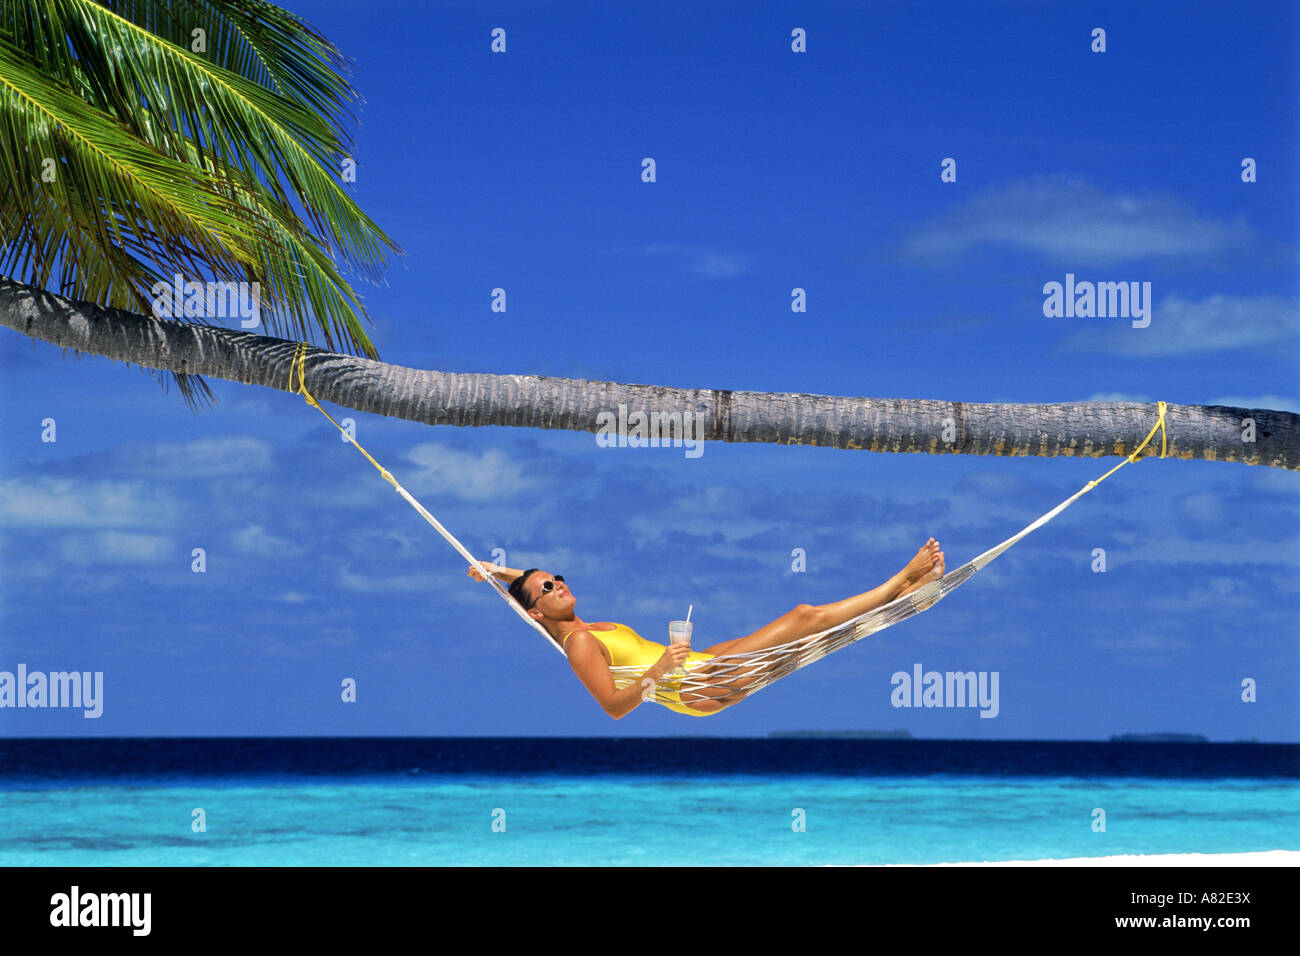 Woman relaxing in hammock under palm tree and blue skies with tropical drink - Stock Image